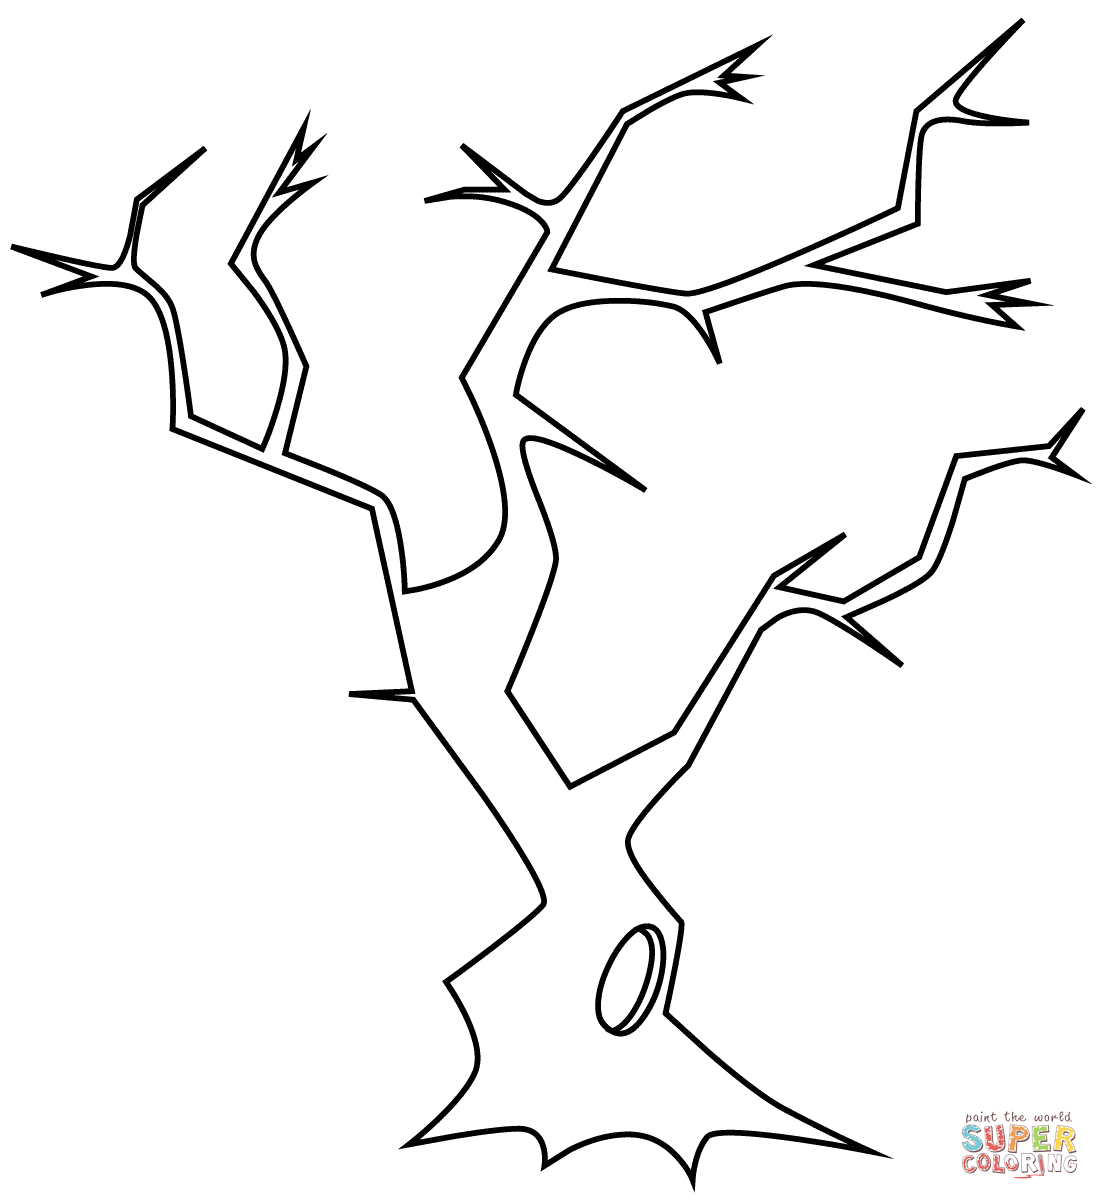 Dead Tree coloring #5, Download drawings